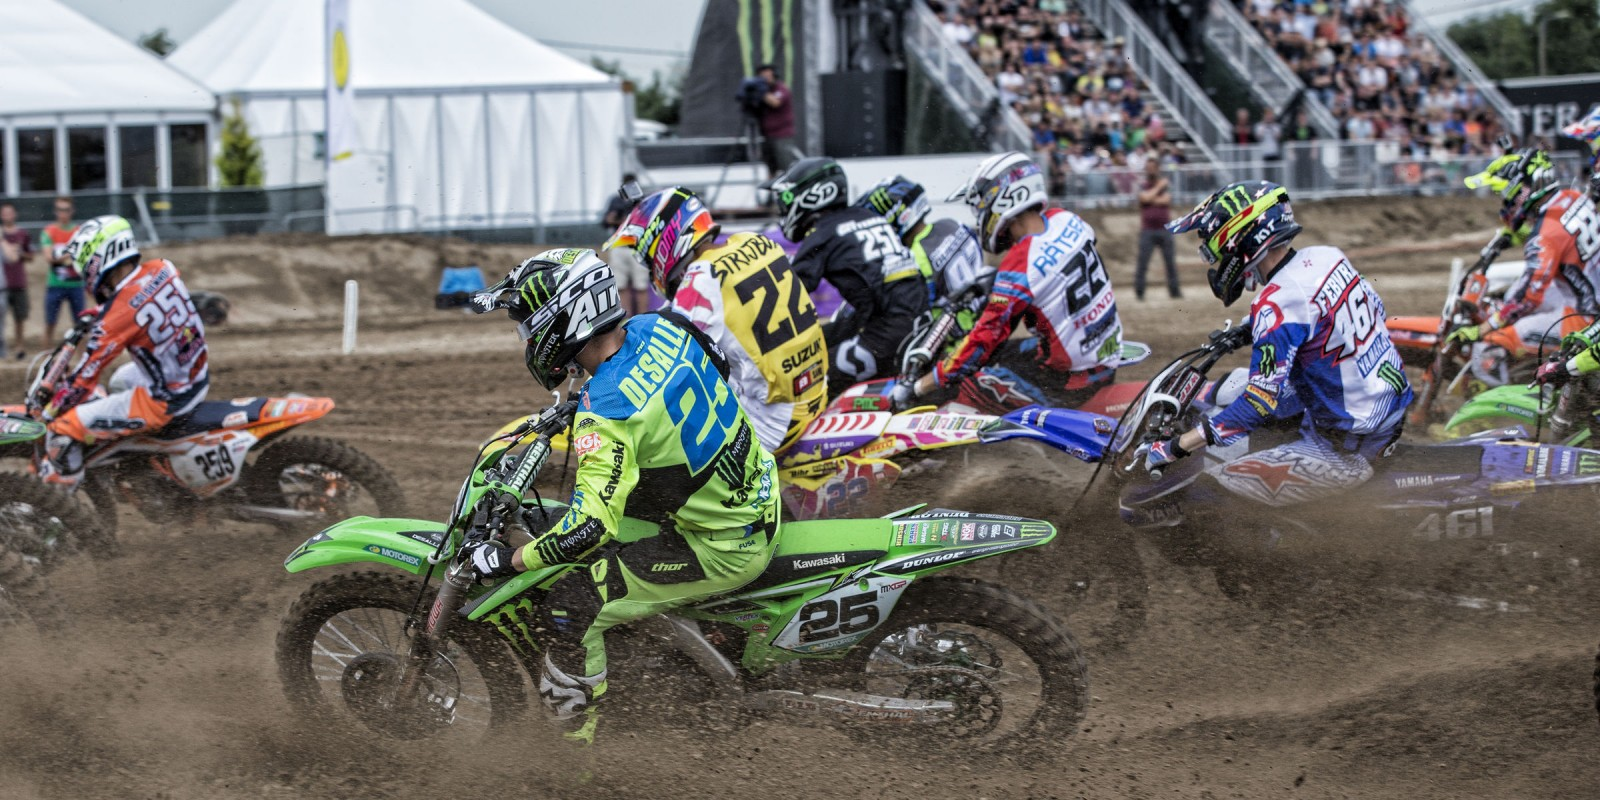 Clement Desalle at the 2016 MXGP of Belgium